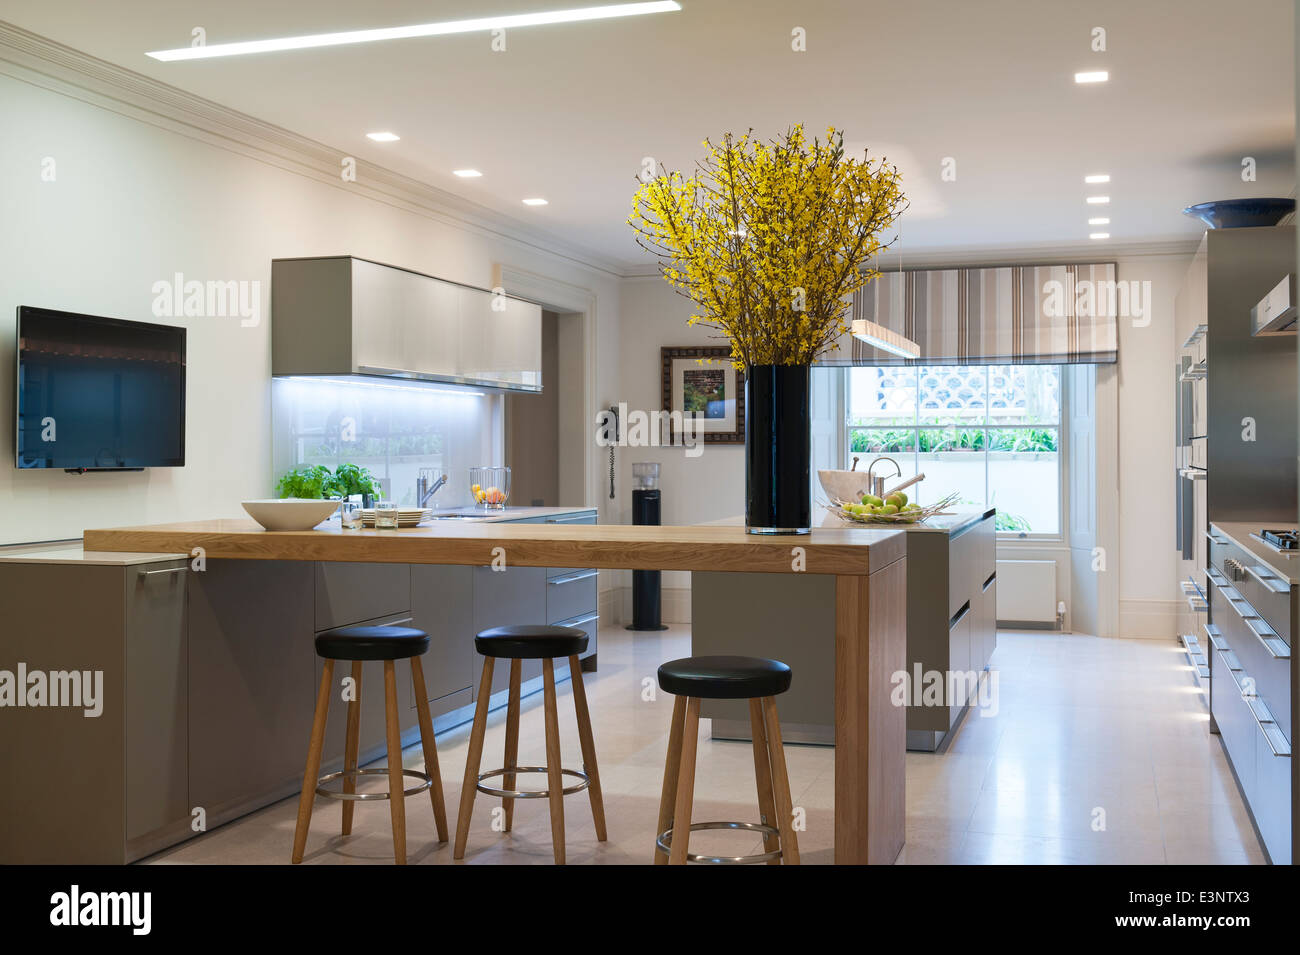 Modern Bulthaup kitchen with breakfast bar and stools Stock Photo 71165979  Alamy